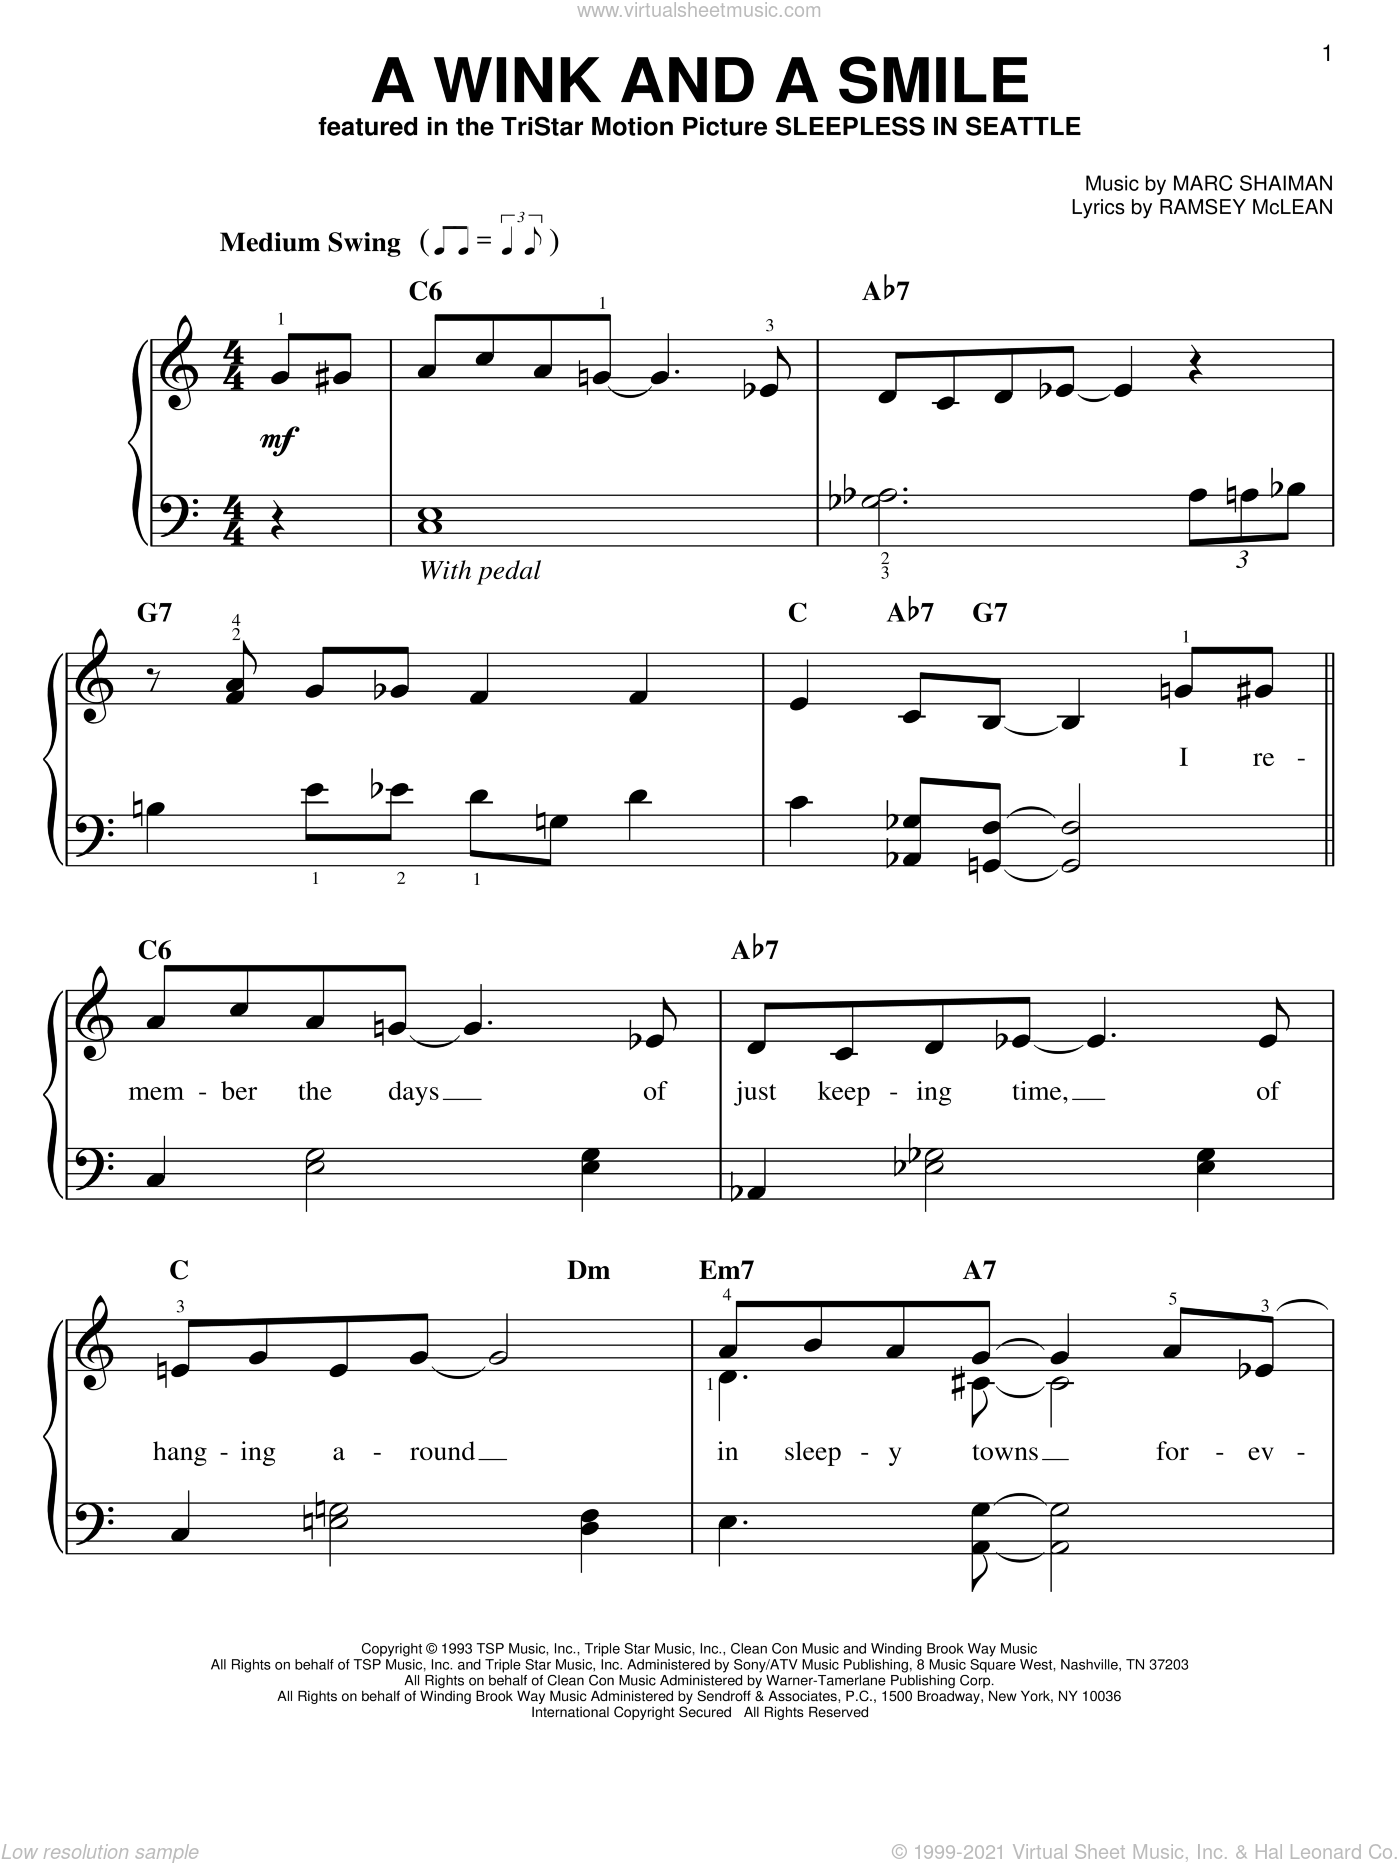 A Wink And A Smile sheet music for piano solo by Ramsey McLean, Harry Connick Jr. and Marc Shaiman